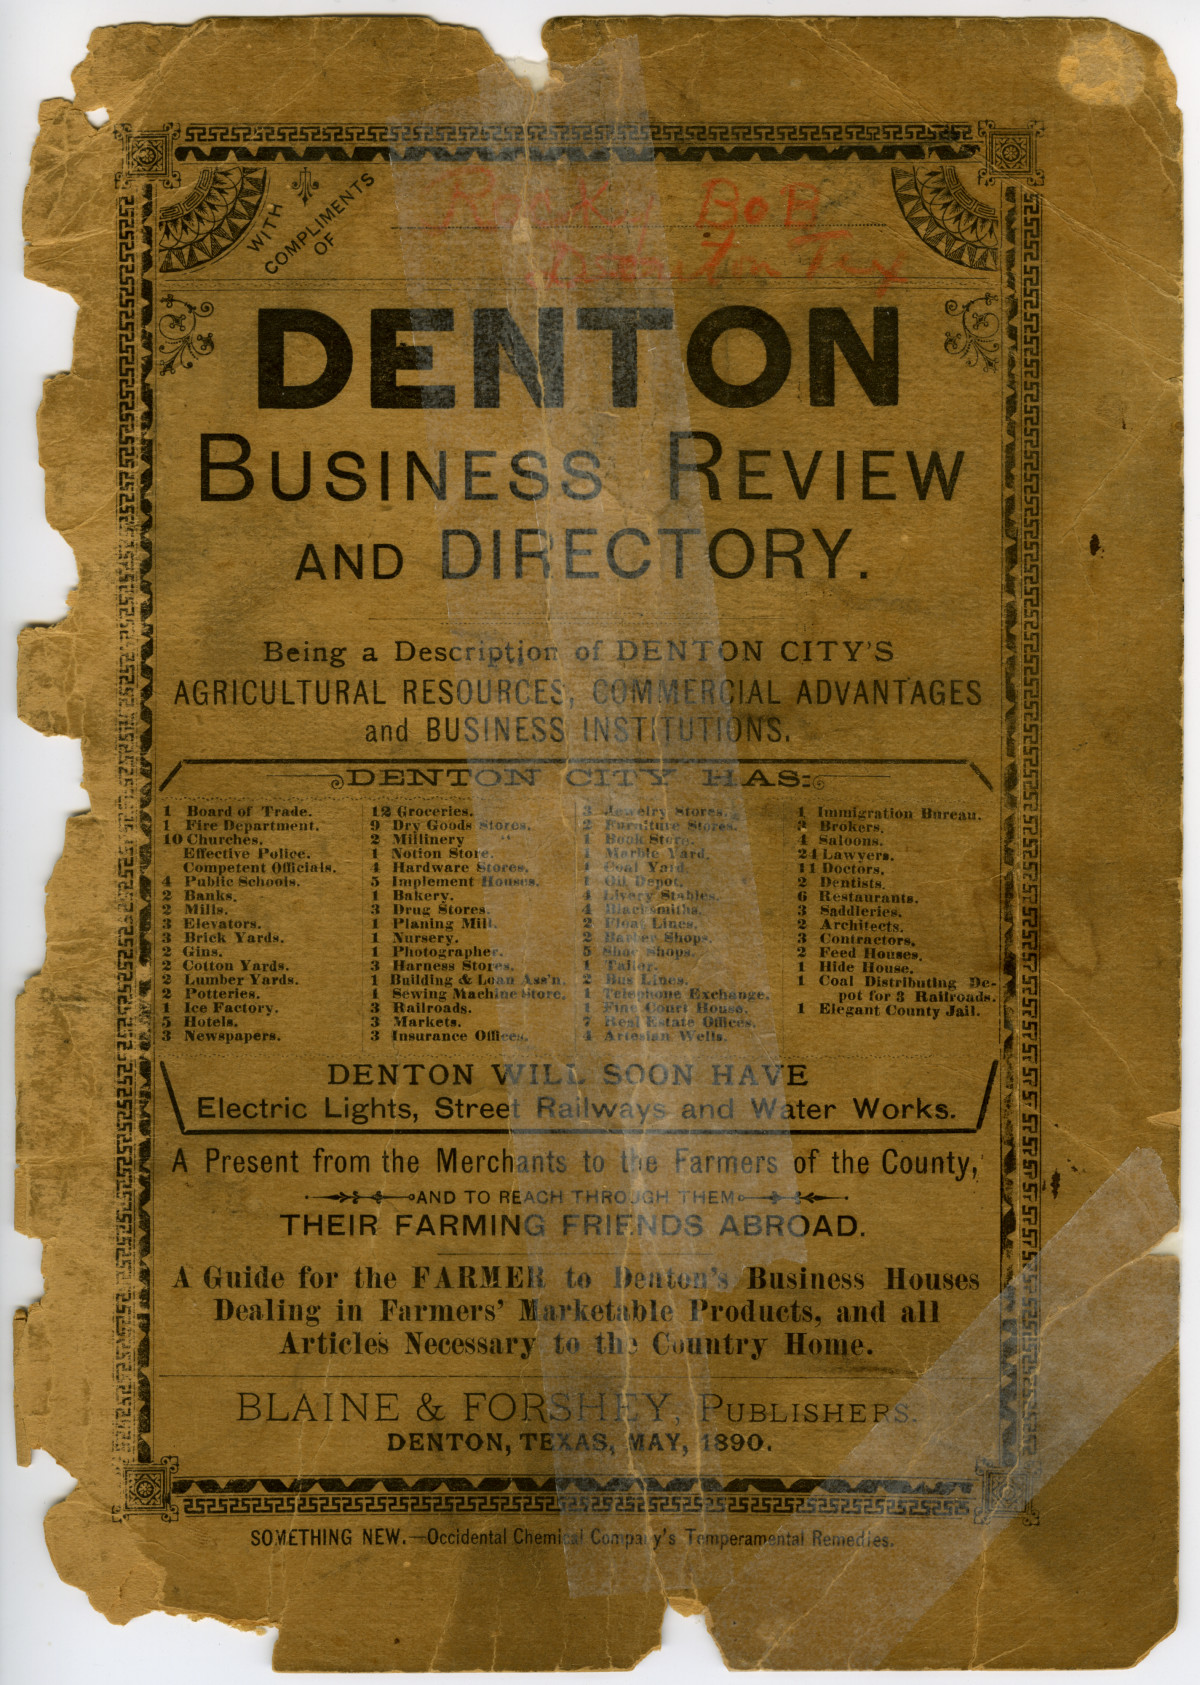 [1890] Denton Business Review and Directory                                                                                                      [Sequence #]: 1 of 43